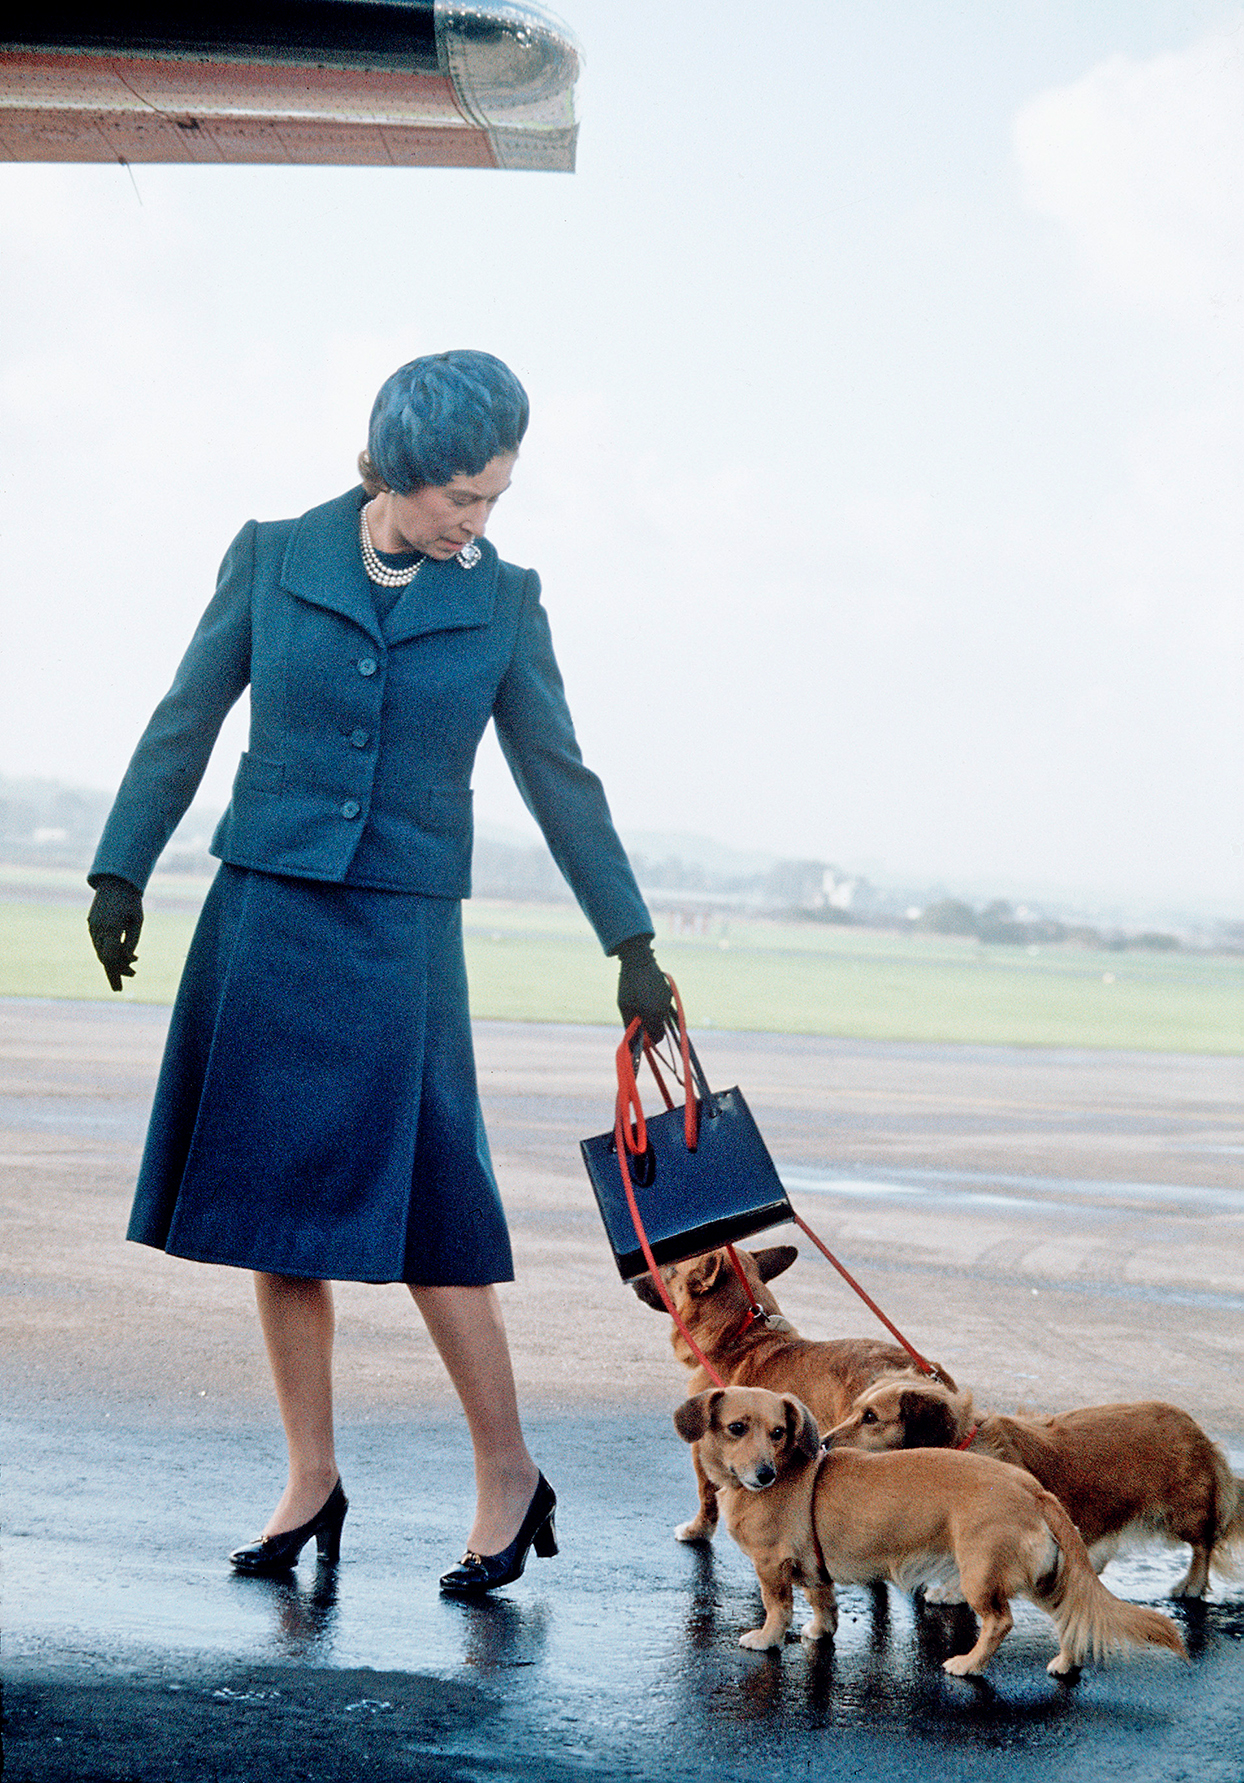 Color candid shot of queen elizabeth leading three dogs along on leash